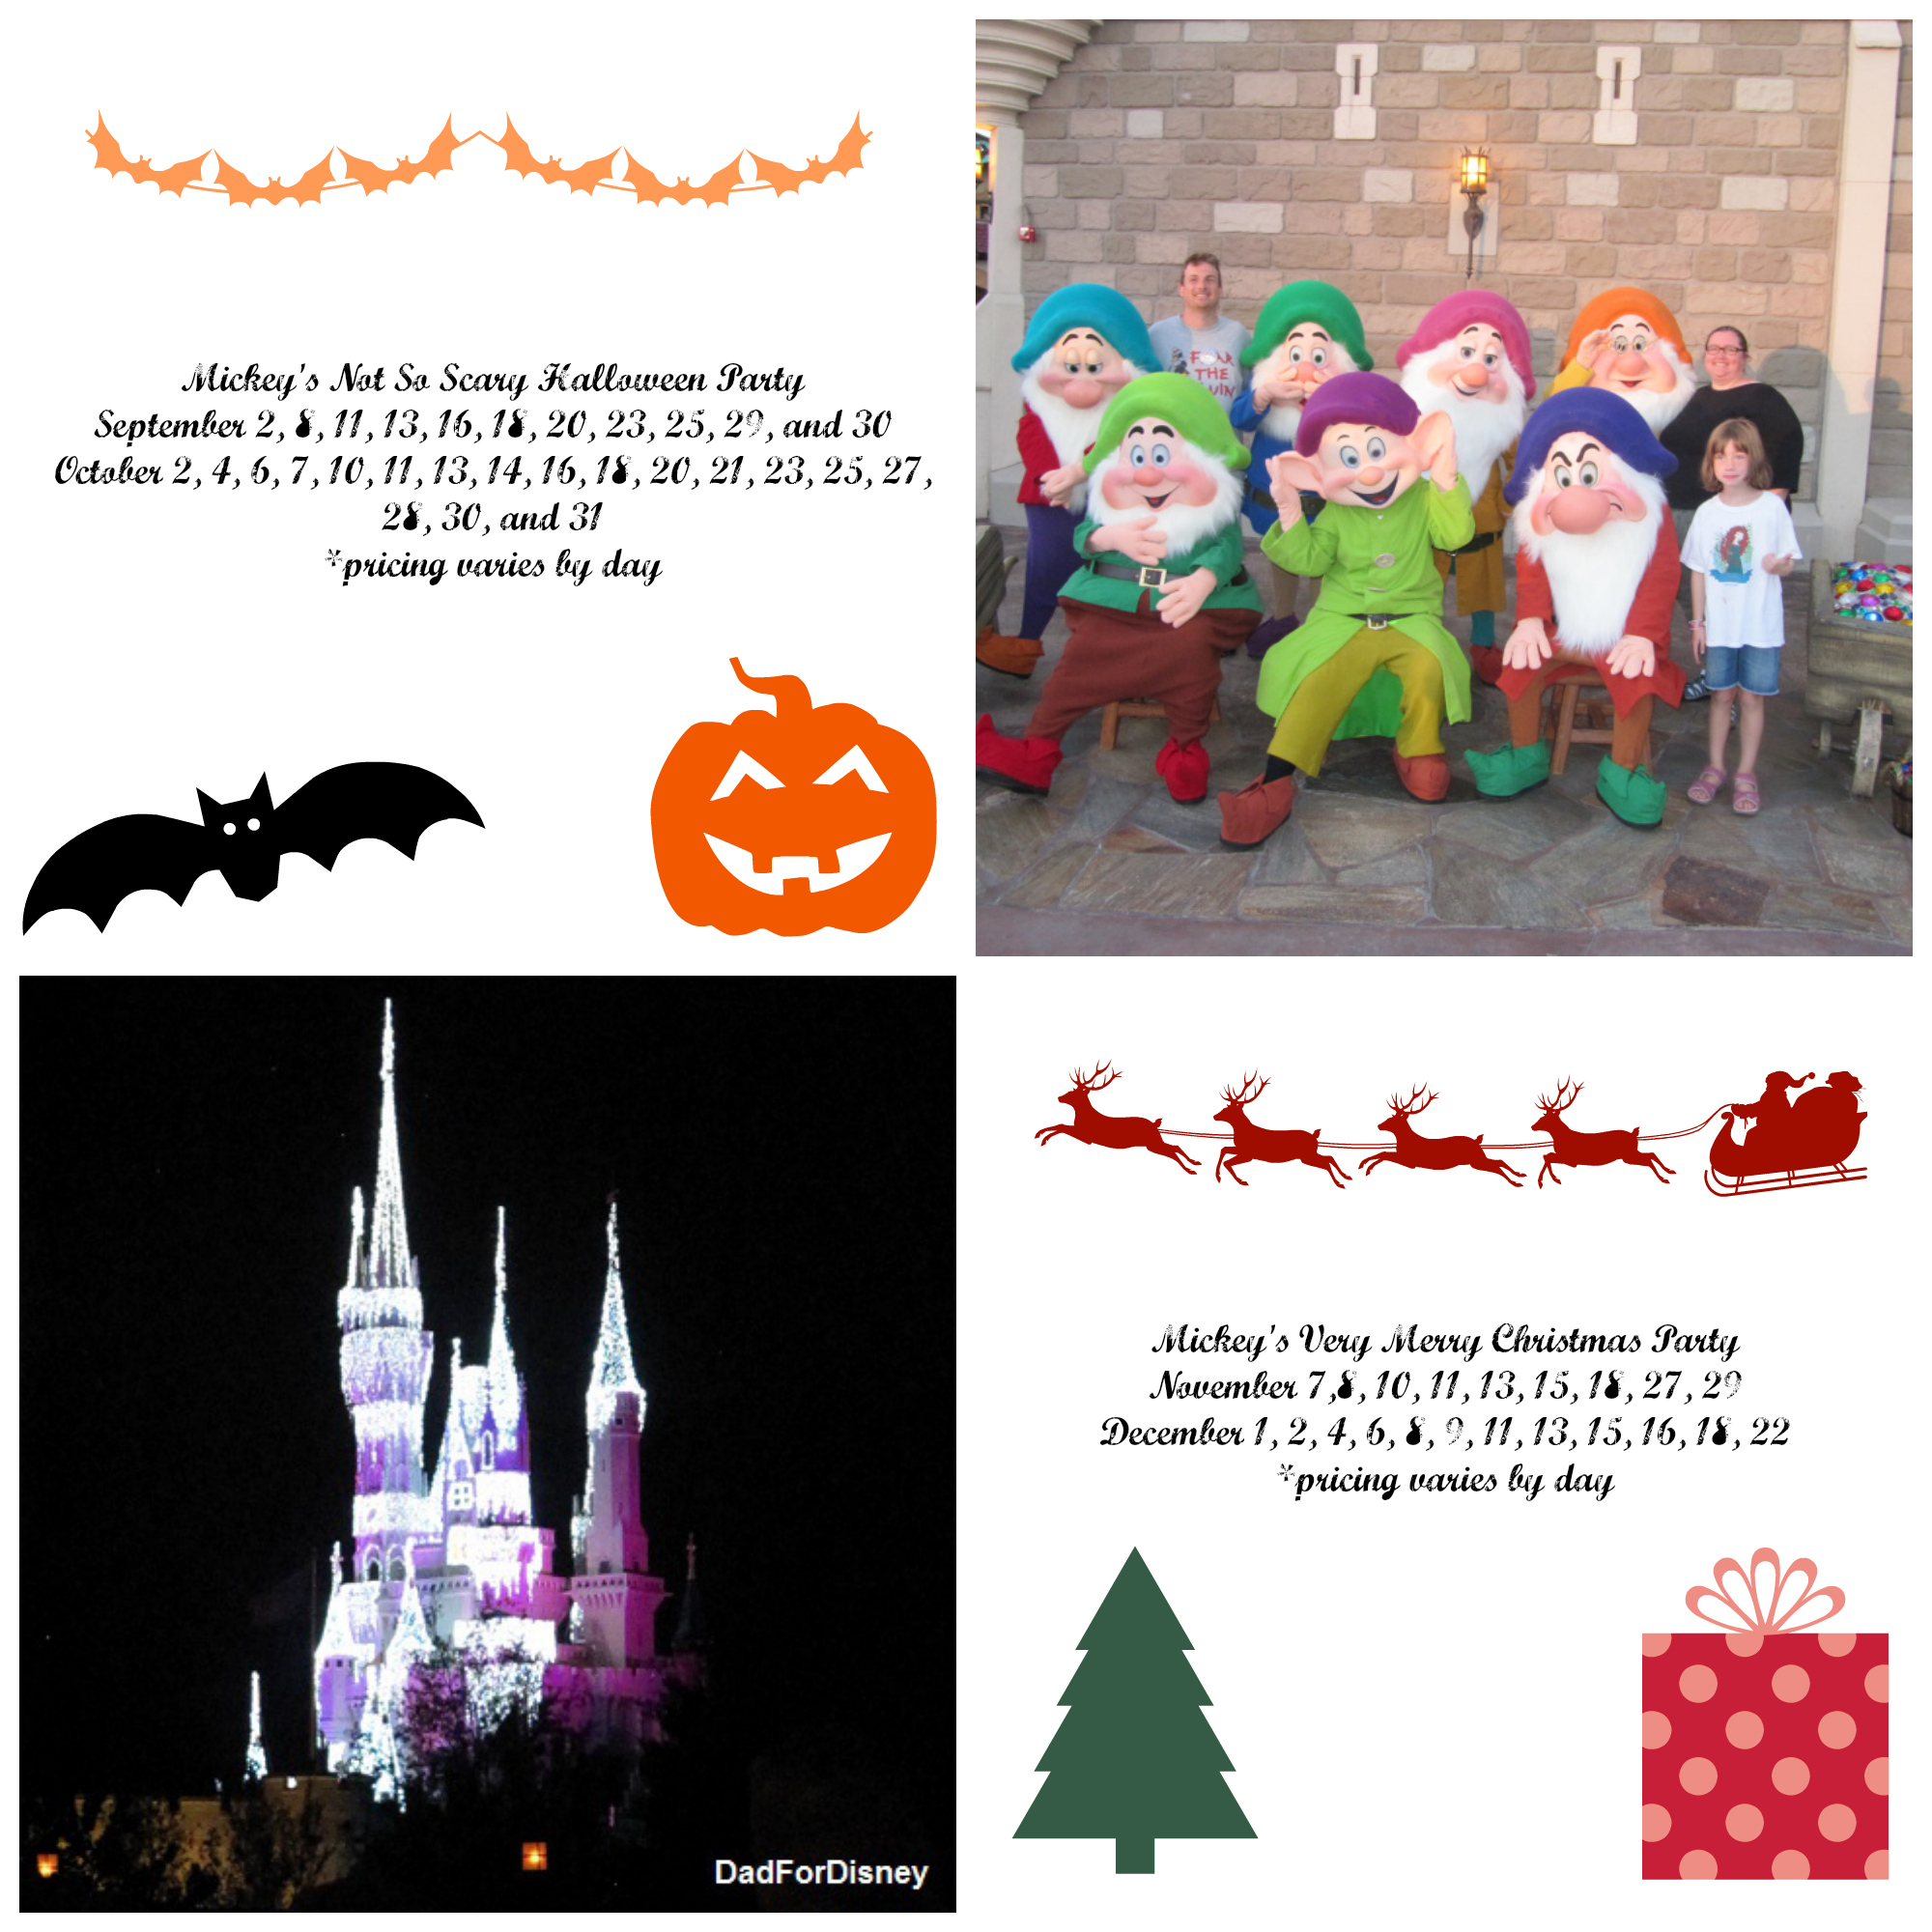 Disney S Very Merry Christmas Party Tickets: Tickets Available For Mickey's Not So Scary Halloween